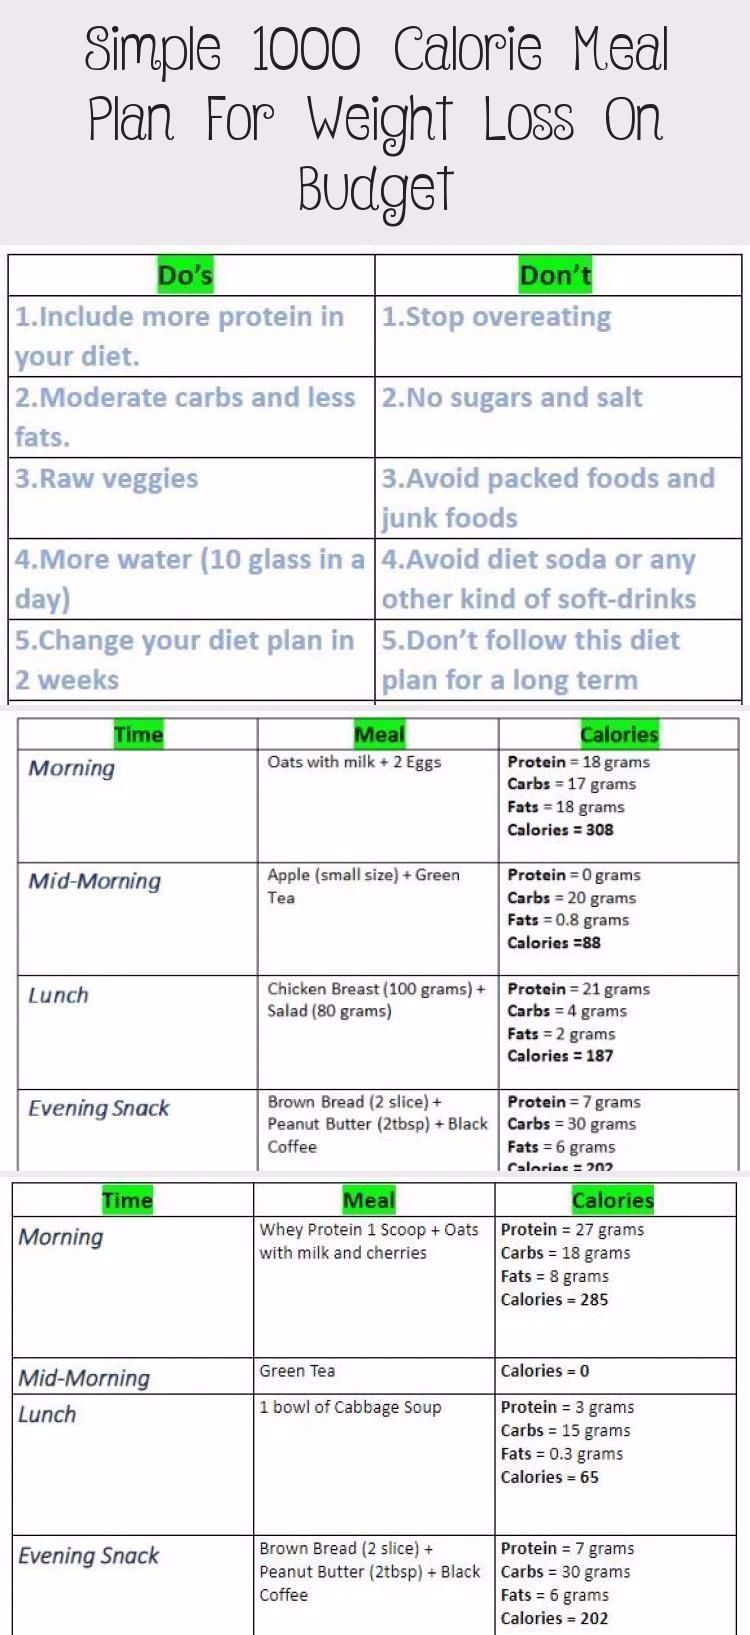 Simple 1000 Calorie Meal Plan For Weight Loss On Budget - DIET - Helen Smith - S... - Reign Strauss...